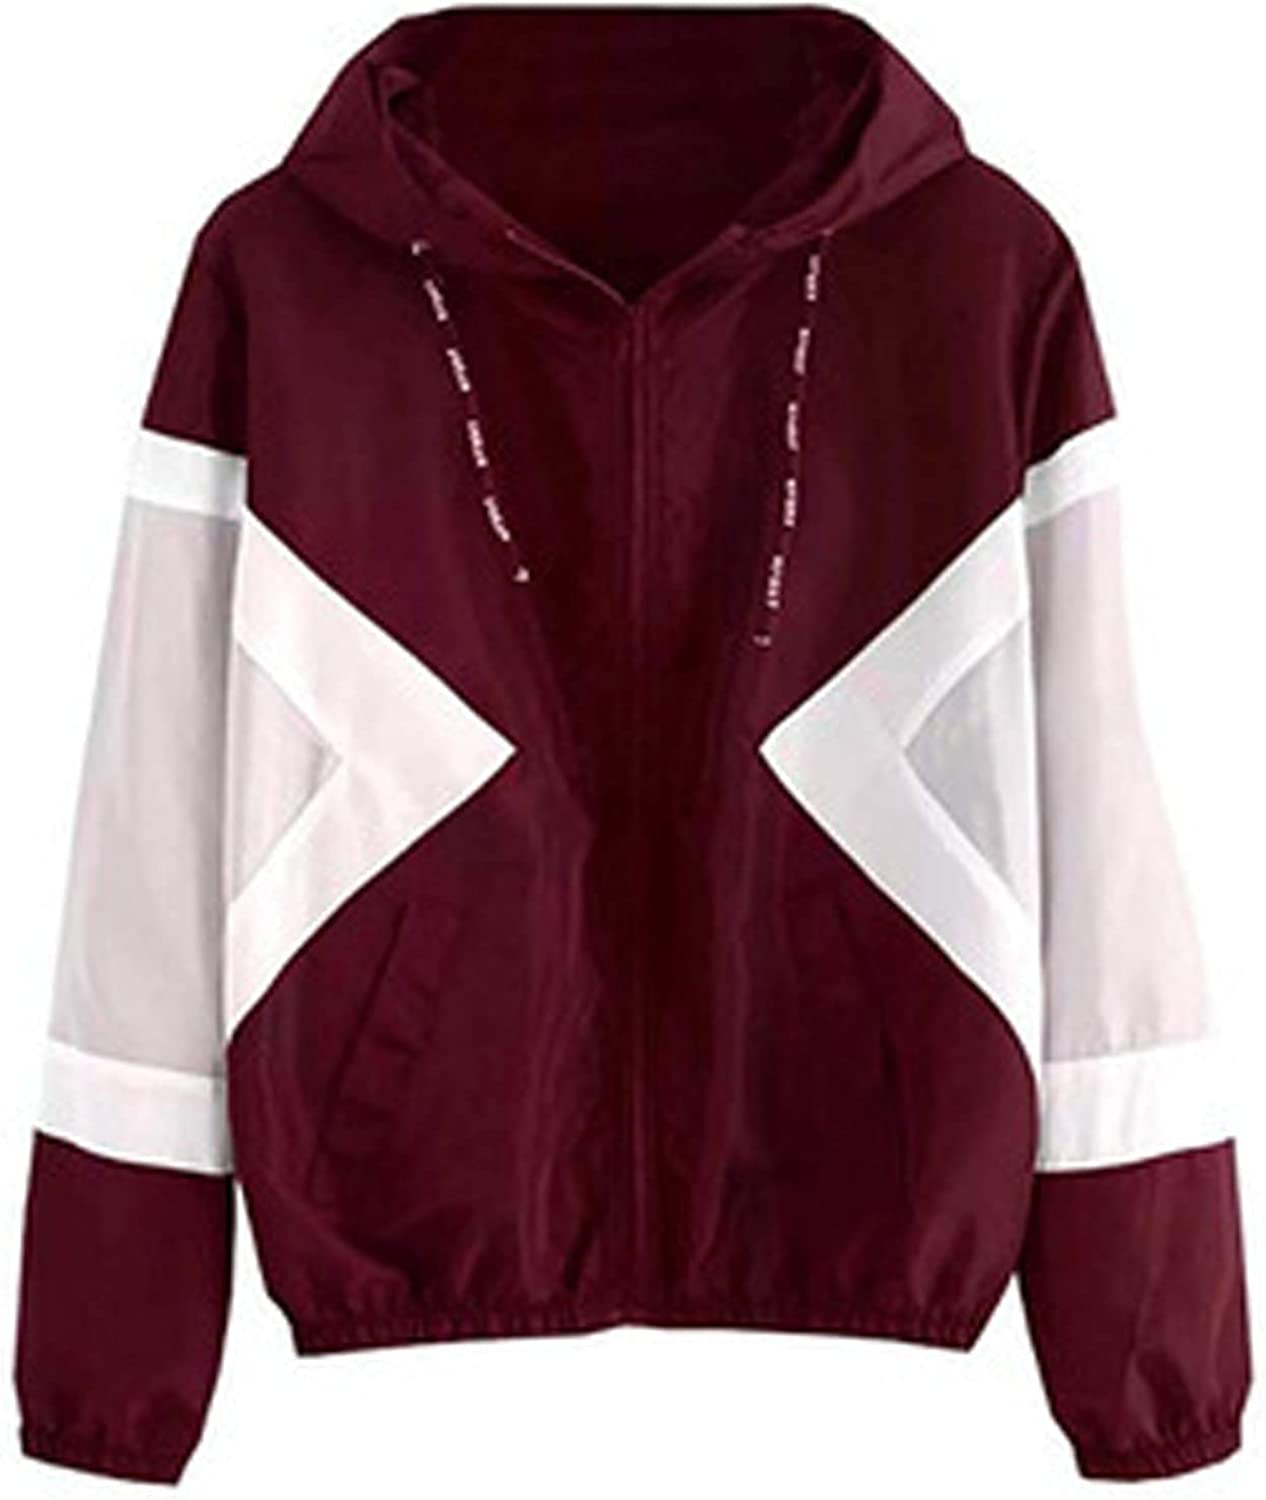 KIKX0DE Coats for Super beauty product restock quality top Inventory cleanup selling sale Women Winter Drawstring Sale Hoode Long Sleeve